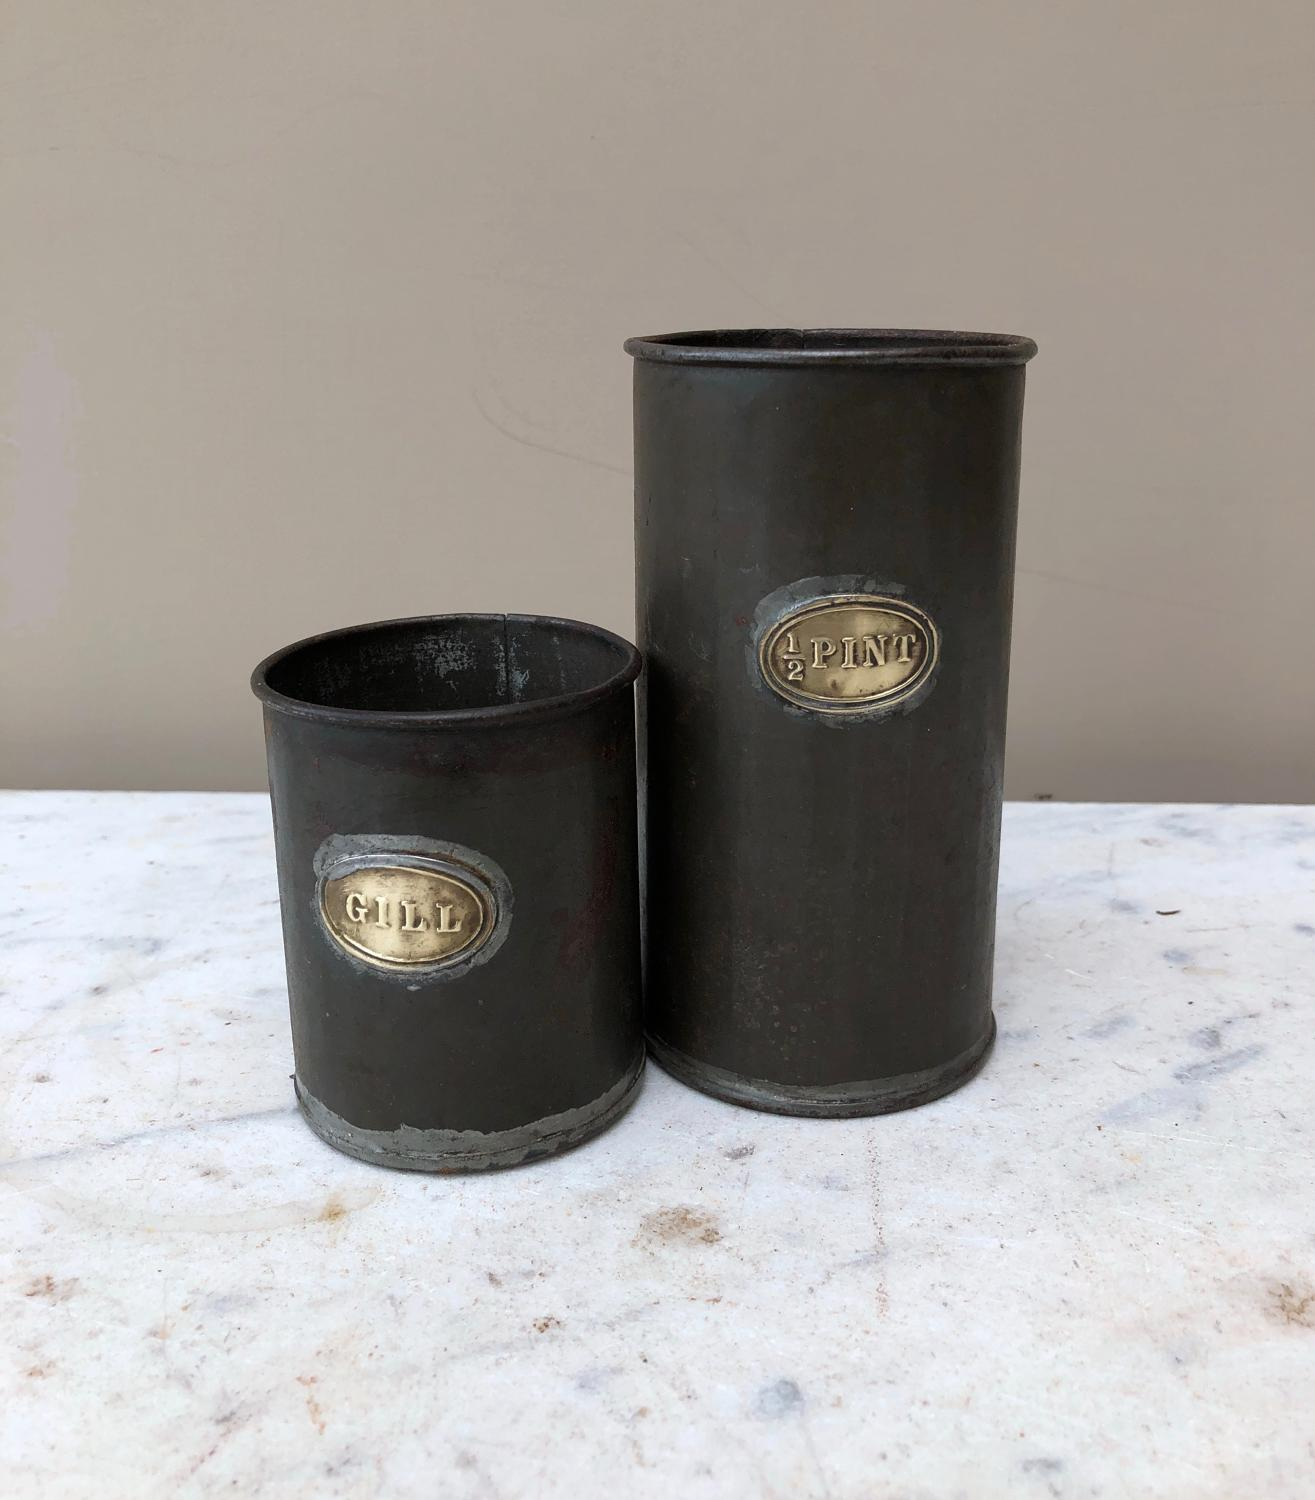 Two Brown & Polsons Measures - Half Pint & Gill